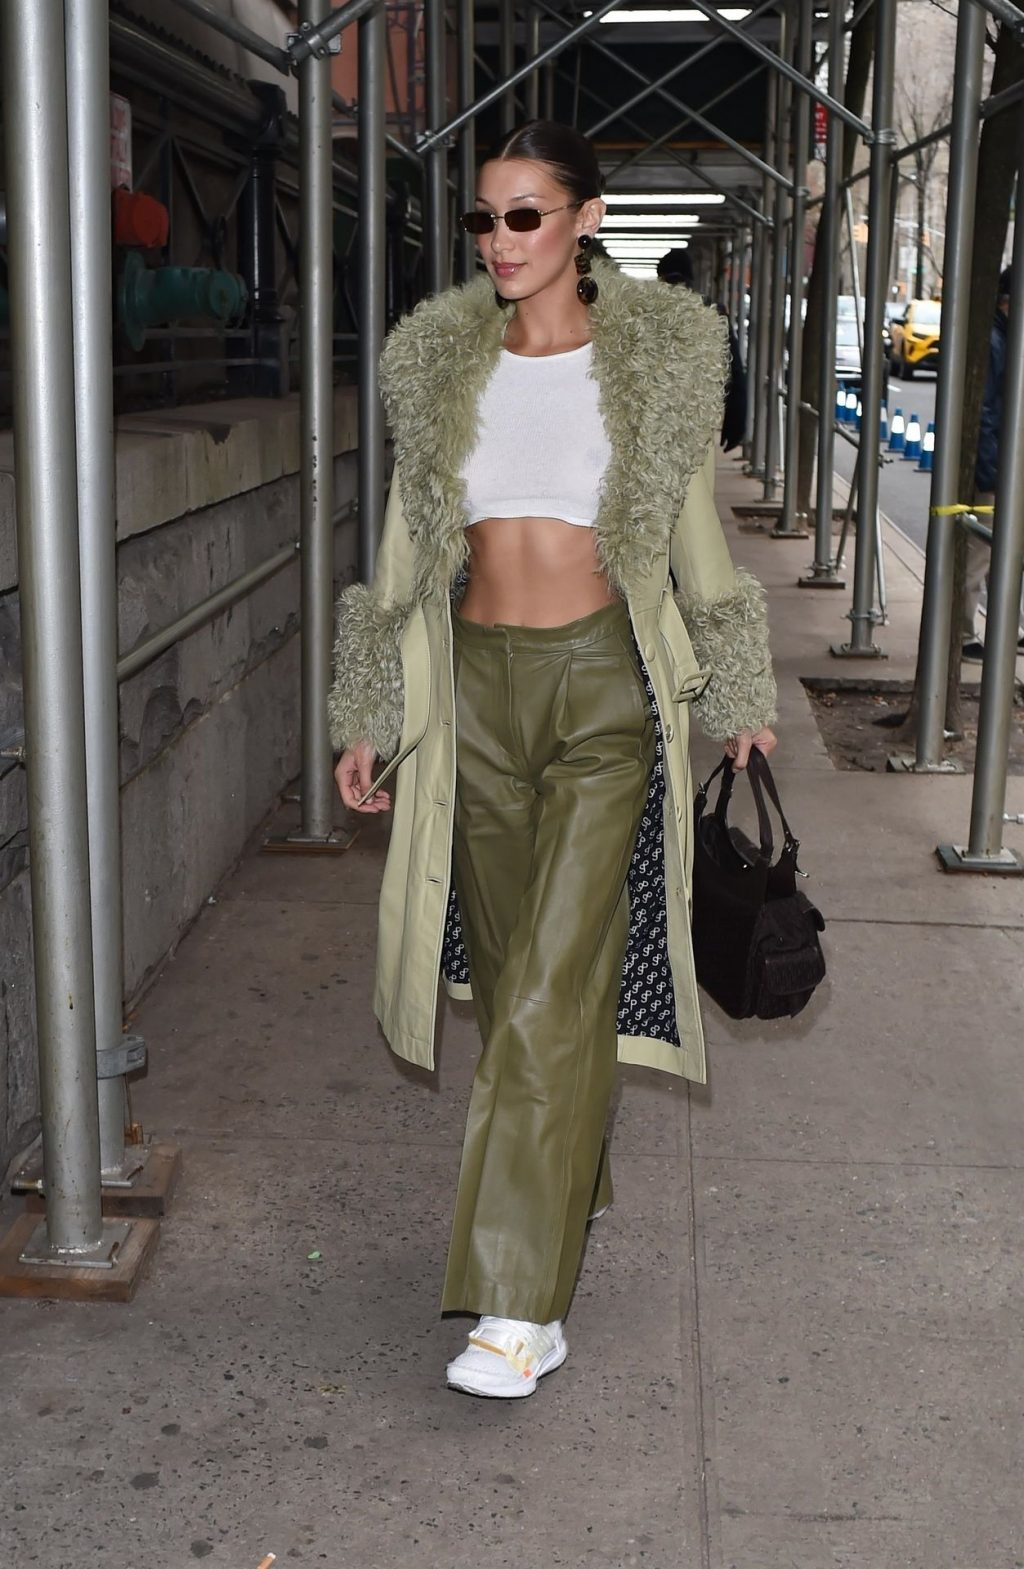 Bella Hadid See through The Fappening Blog 3 1 1024x1569 - Braless Bella Hadid Arrives at the Park Avenue Armory for the Marc Jacobs Fashion Show (59 Photos)